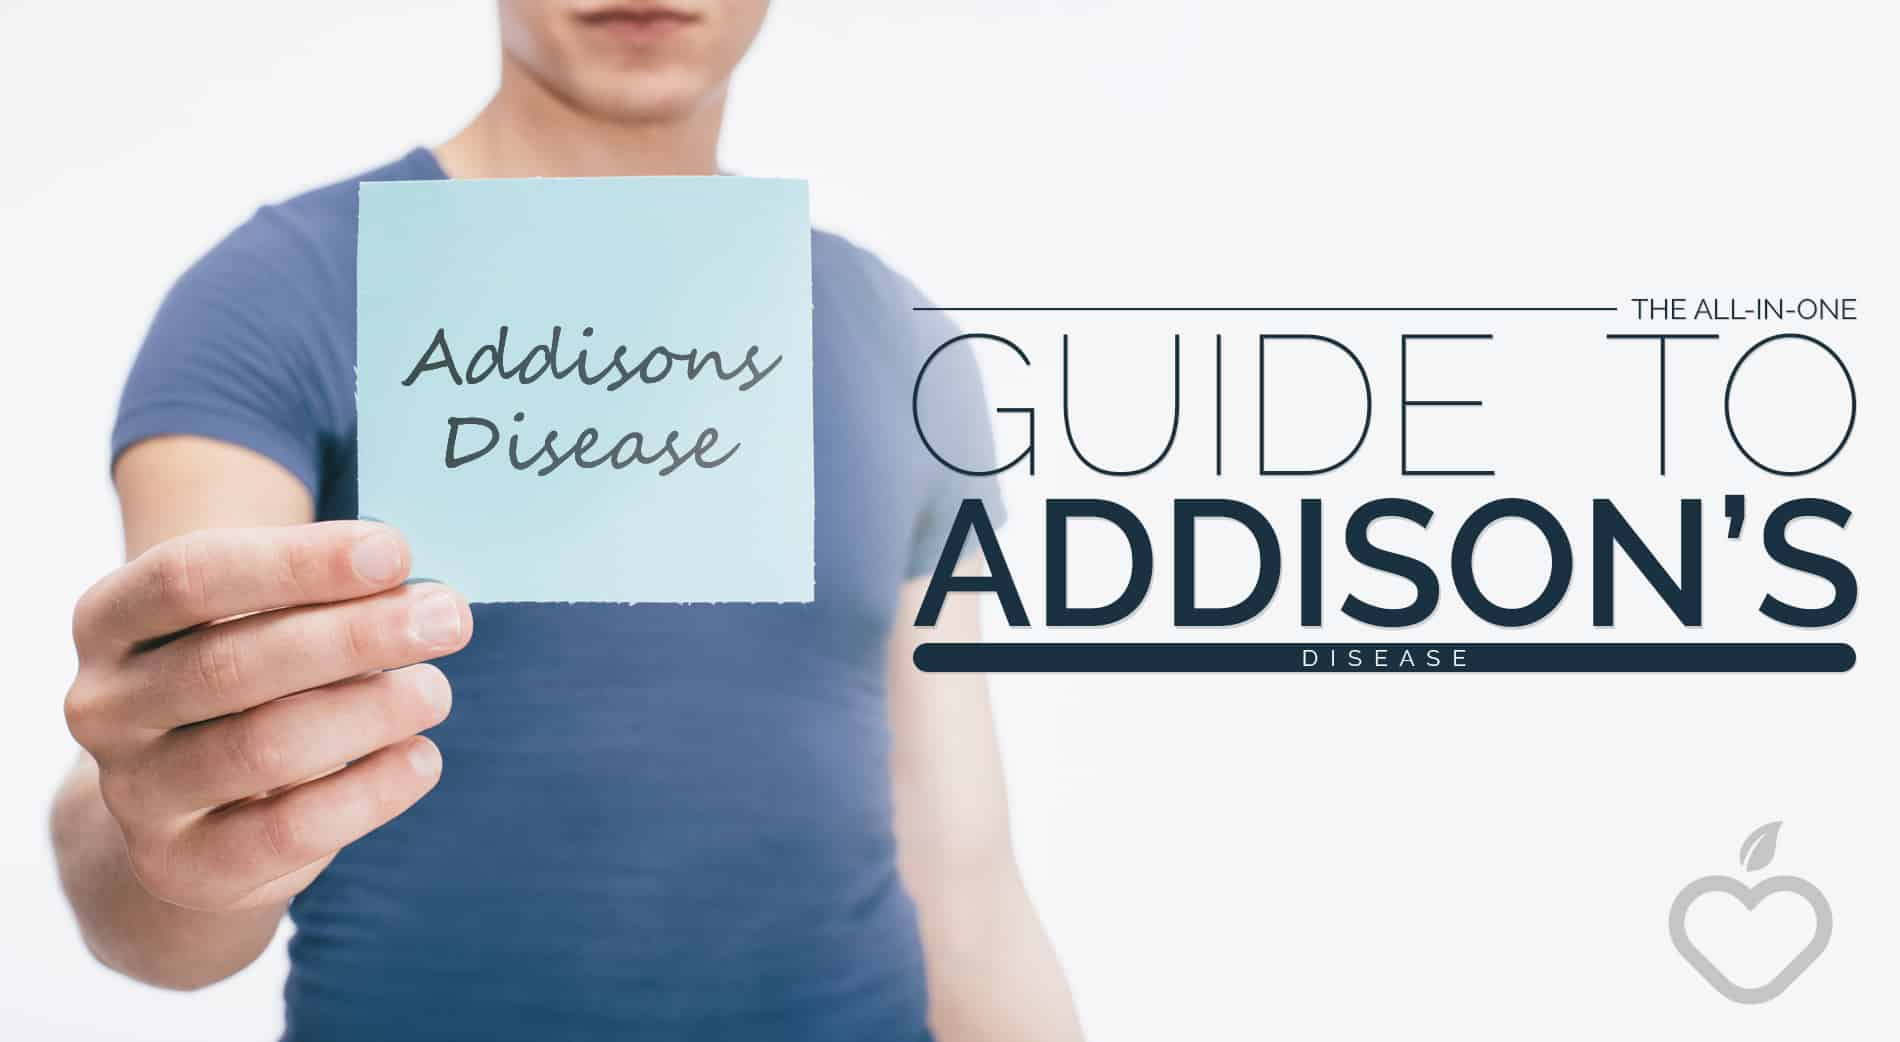 Addisons Disease Image Design 1 - The All-In-One Information to Addison's Illness